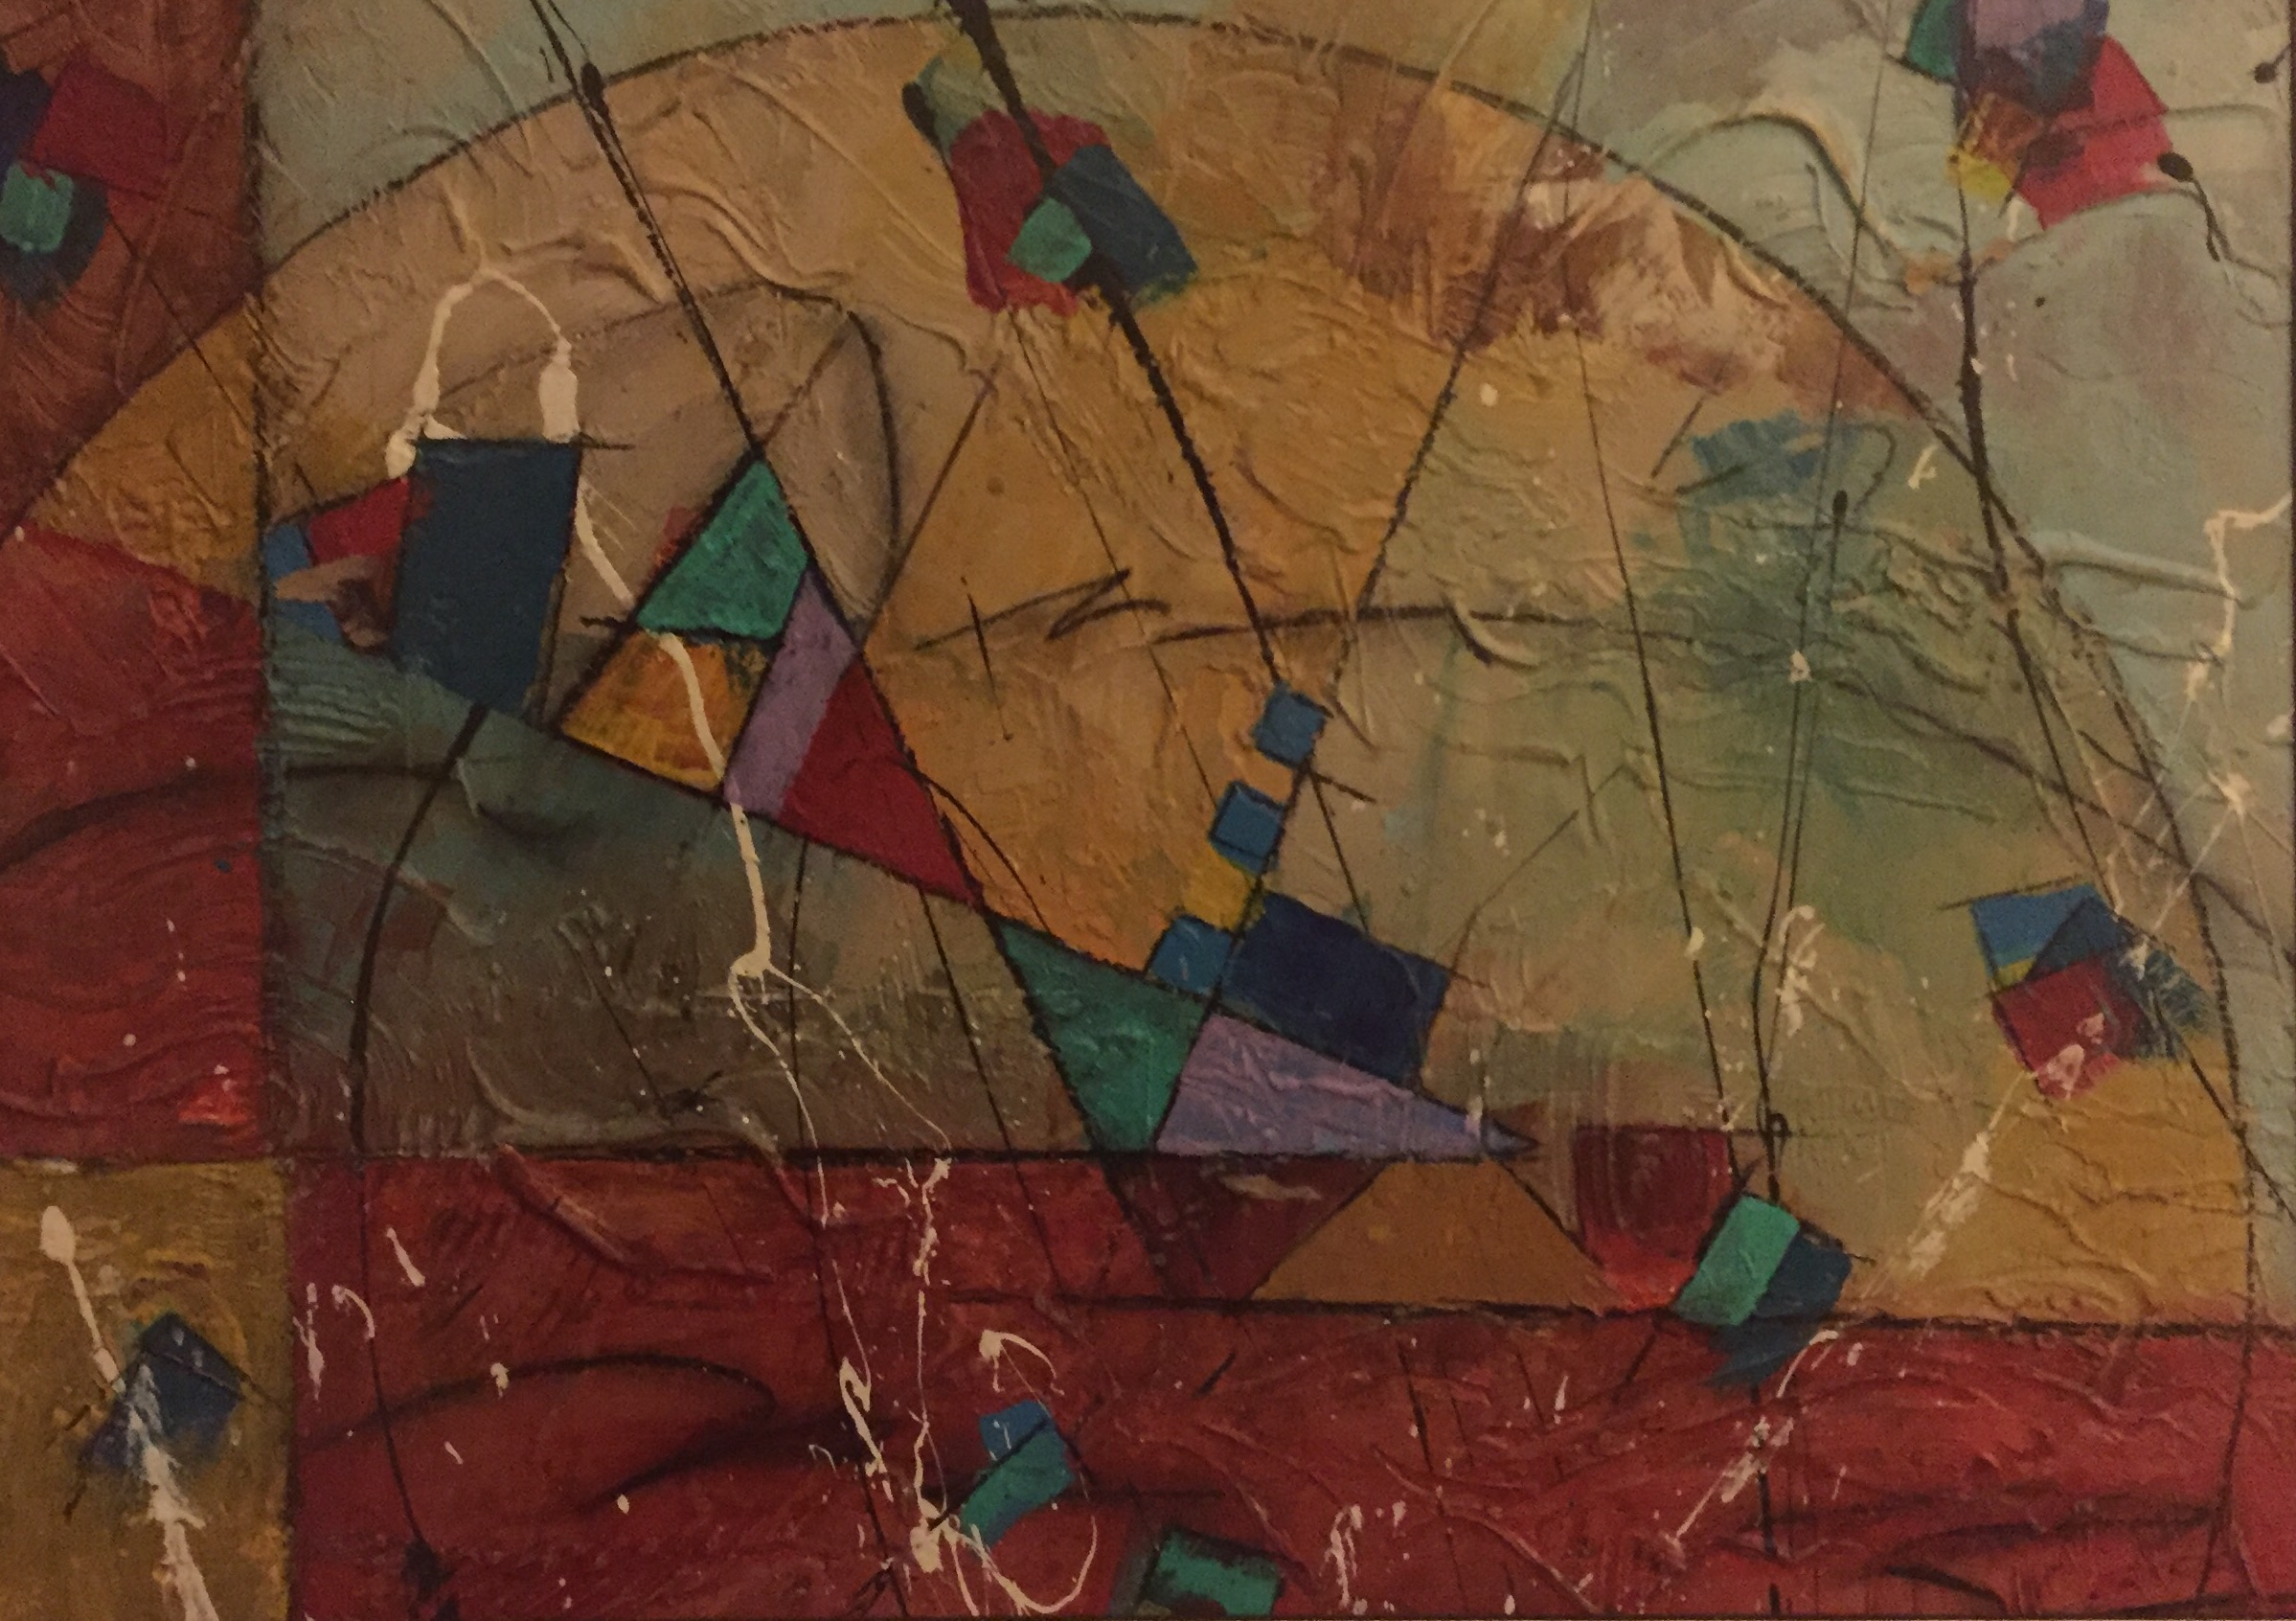 """""""Abrupt Turbulence"""" by David Keator, 15x20.5in, oil on canvas (2014), $600  